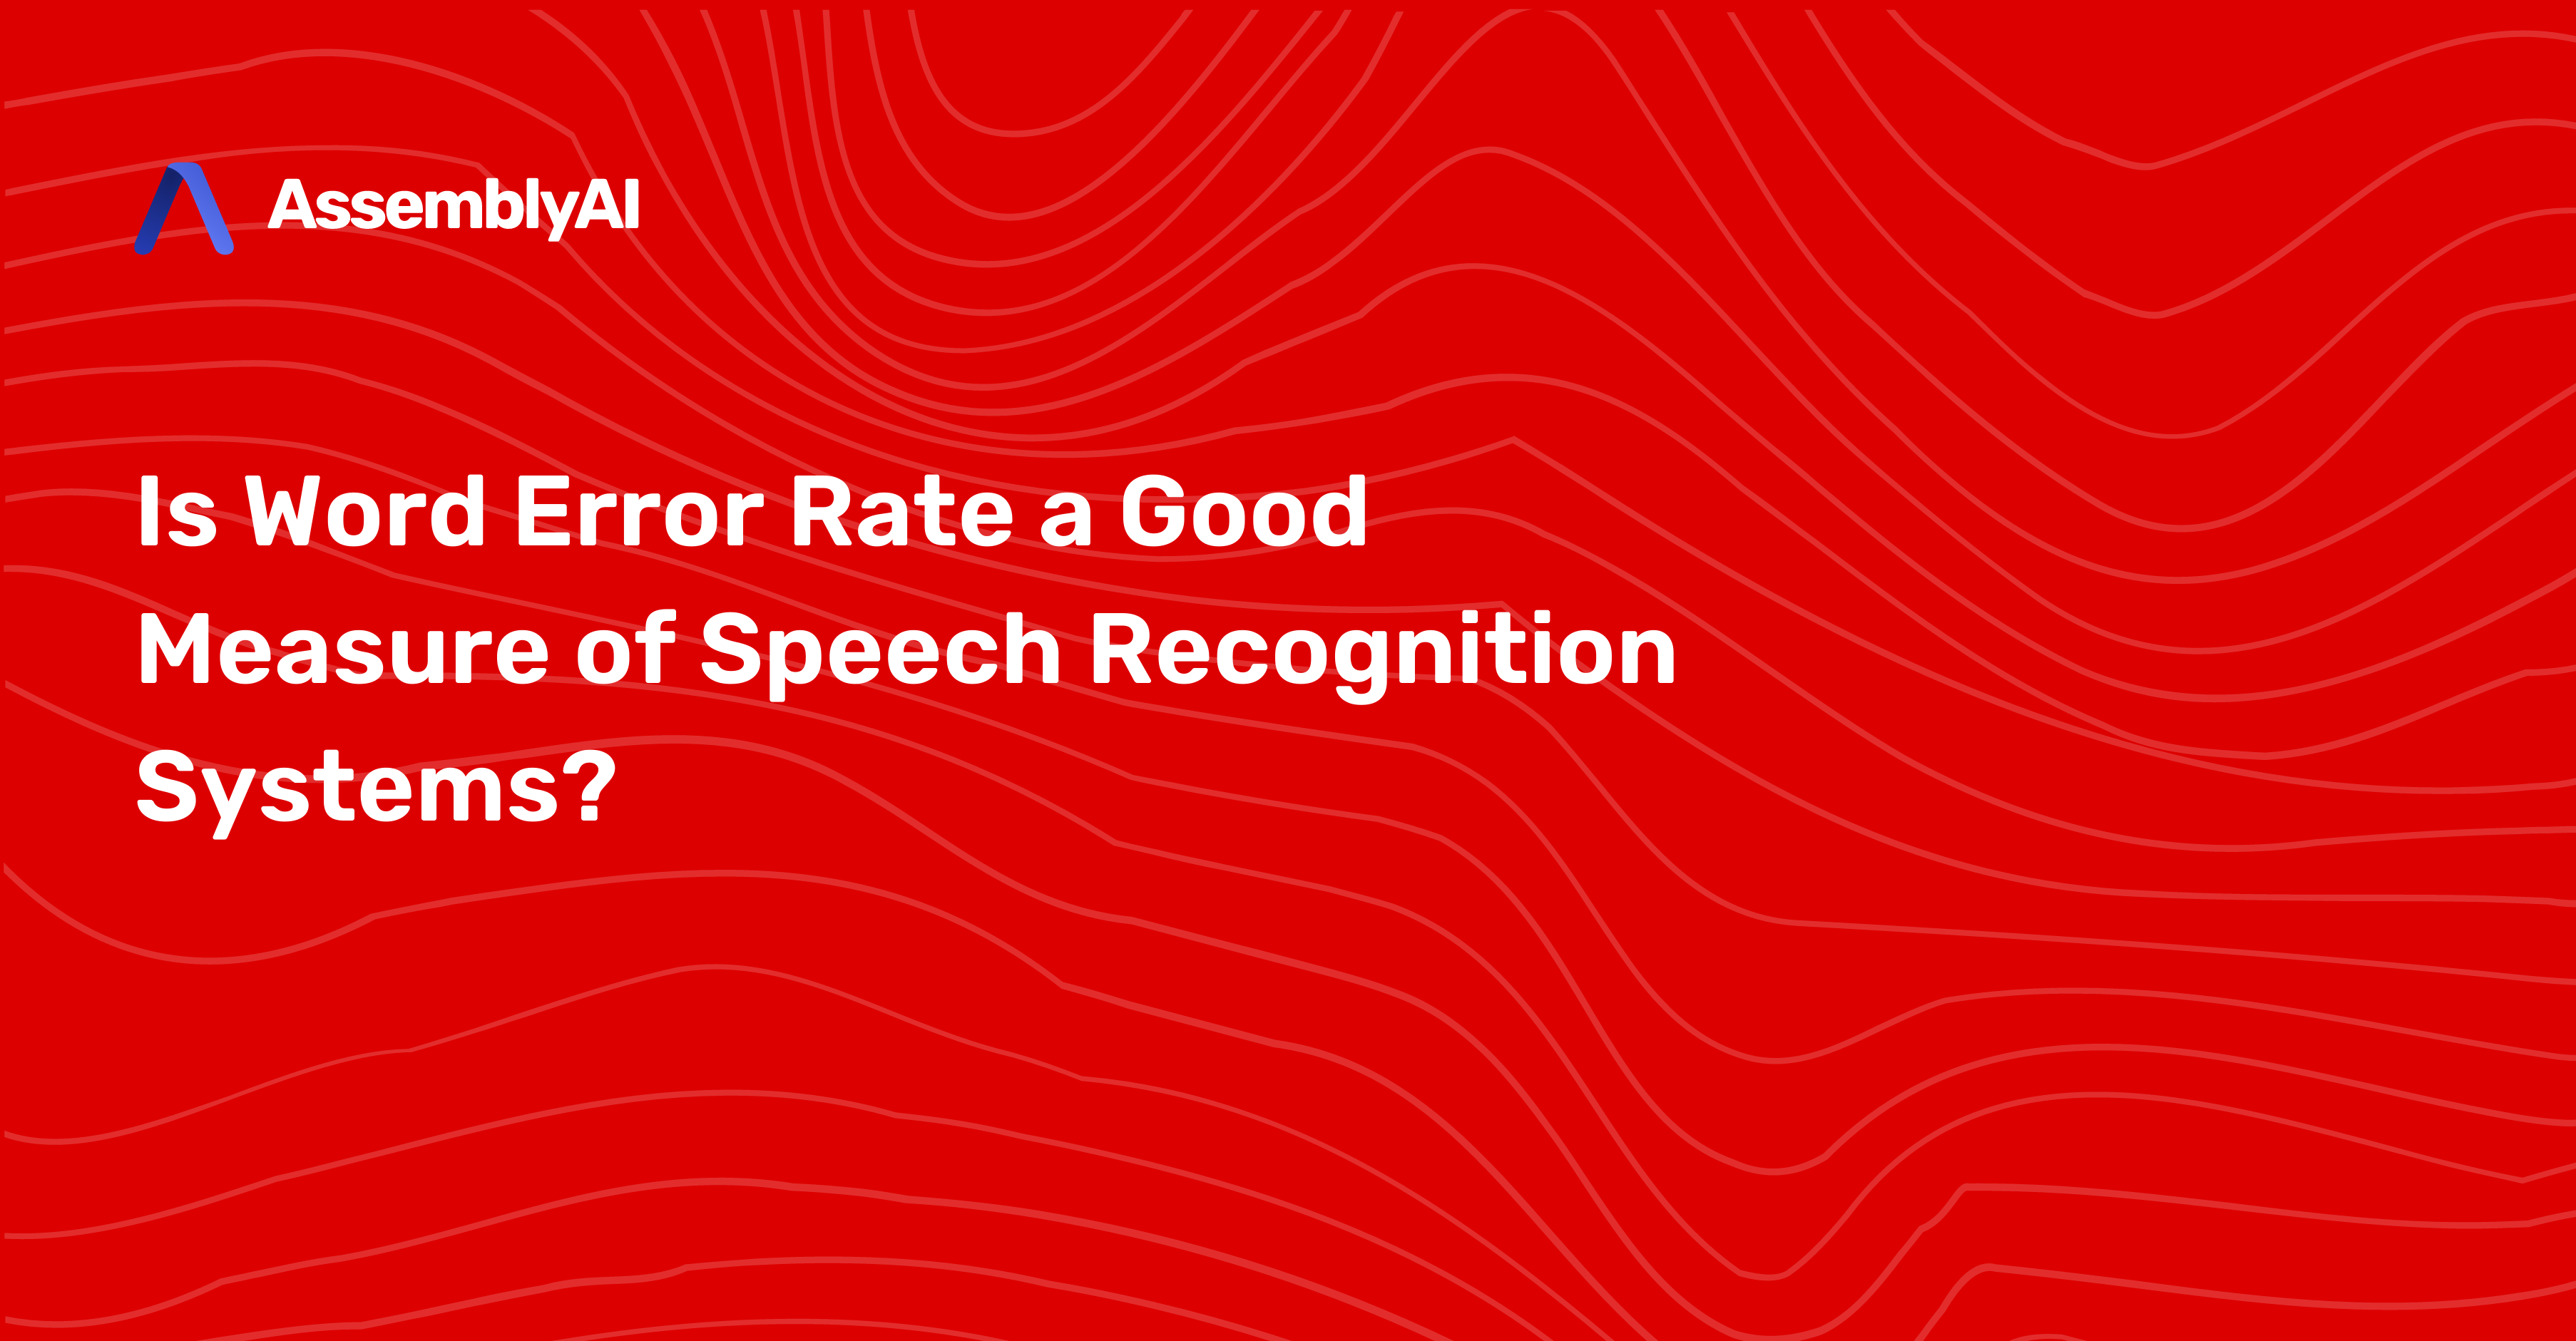 Is Word Error Rate a Good Measure of Speech Recognition Systems?